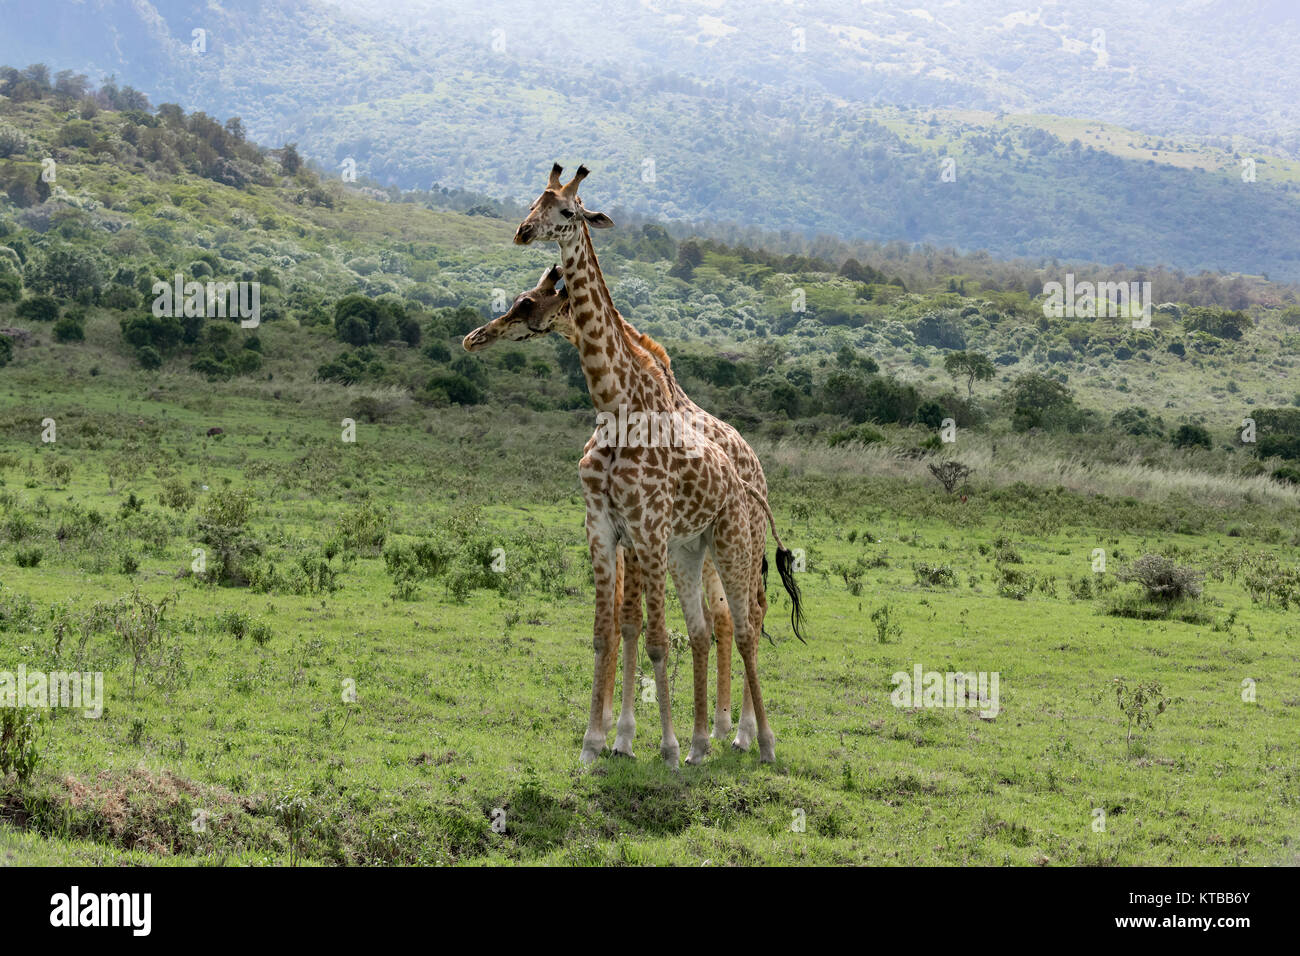 Two young Masai giraffes interacting together 4, near Mount Meru, Arusha NP, Tanzania - Stock Image